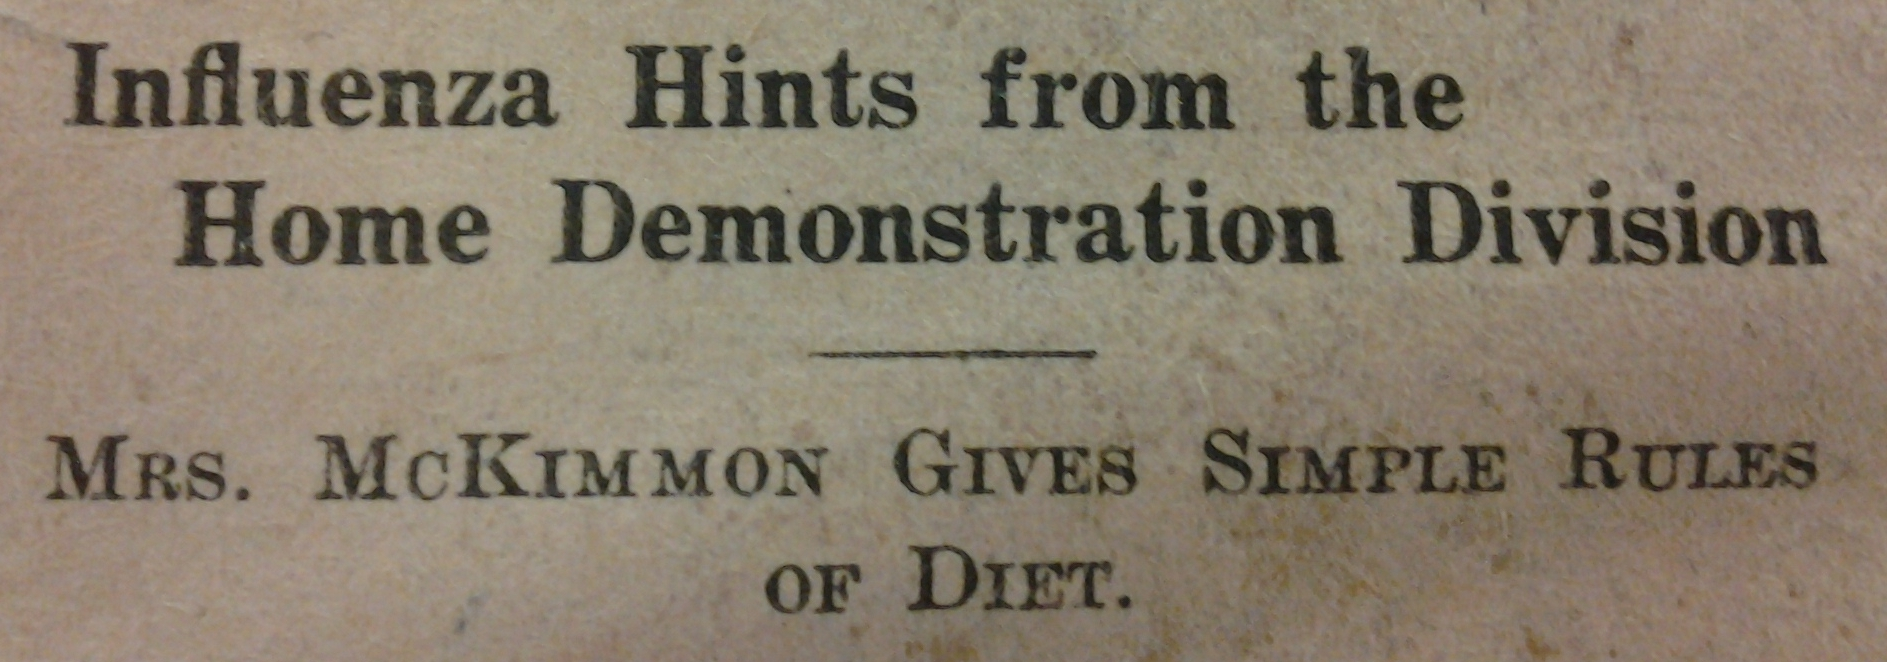 From Extension Farm-News, 26 Oct. 1918